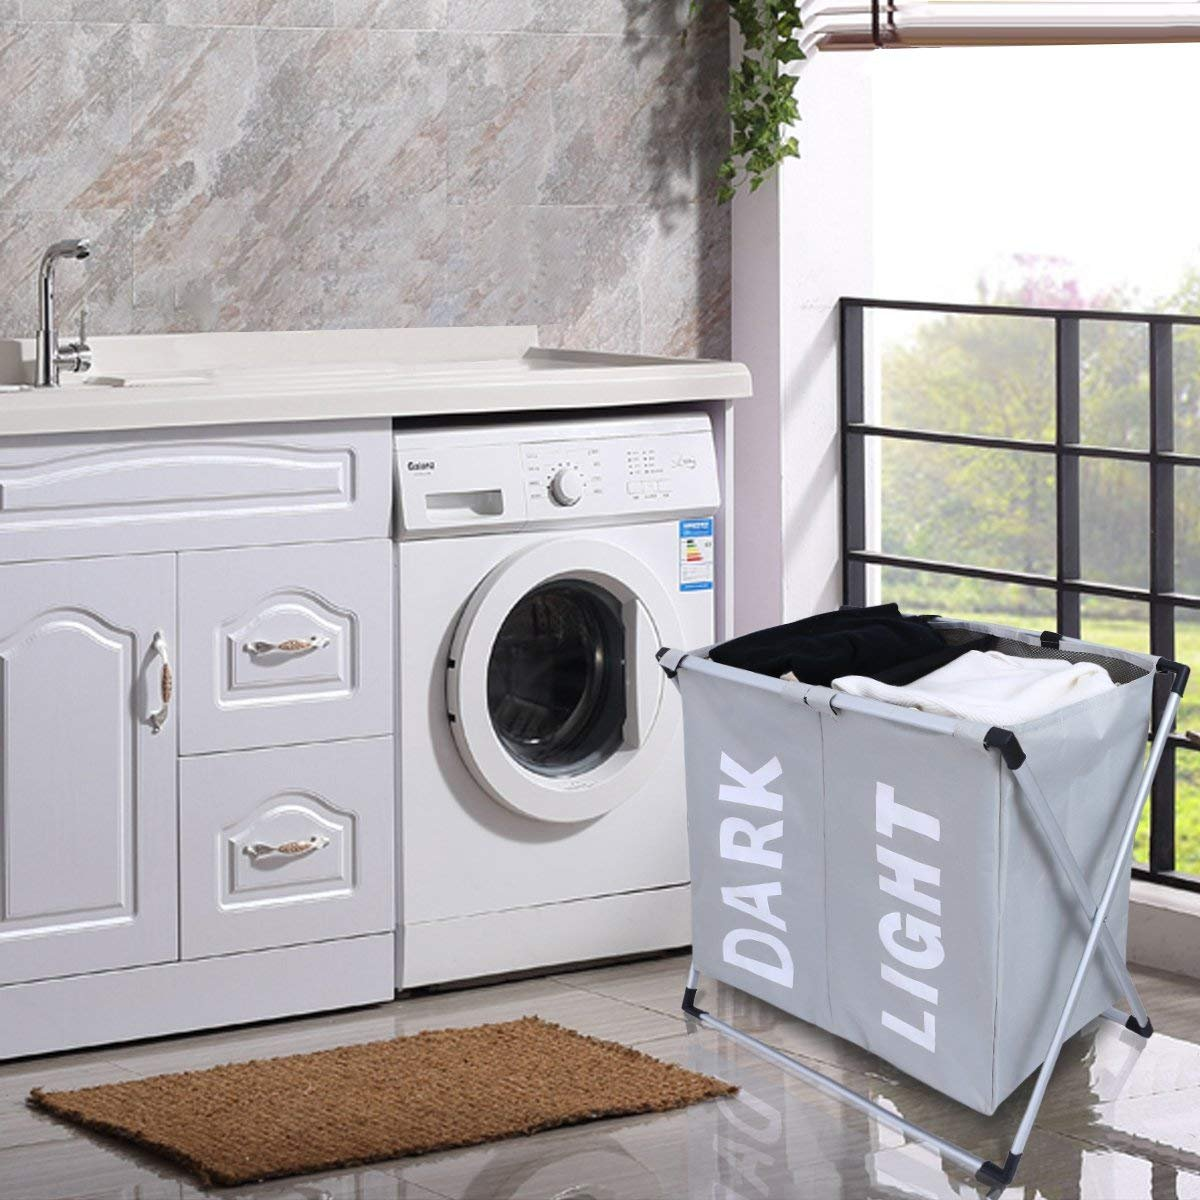 WOWLIVE 2 Section Laundry Hamper X-Frame Double Laundry Basket with Aluminum Frame Durable Dirty Clothes Bag for Bathroom Bedroom Home (Grey)